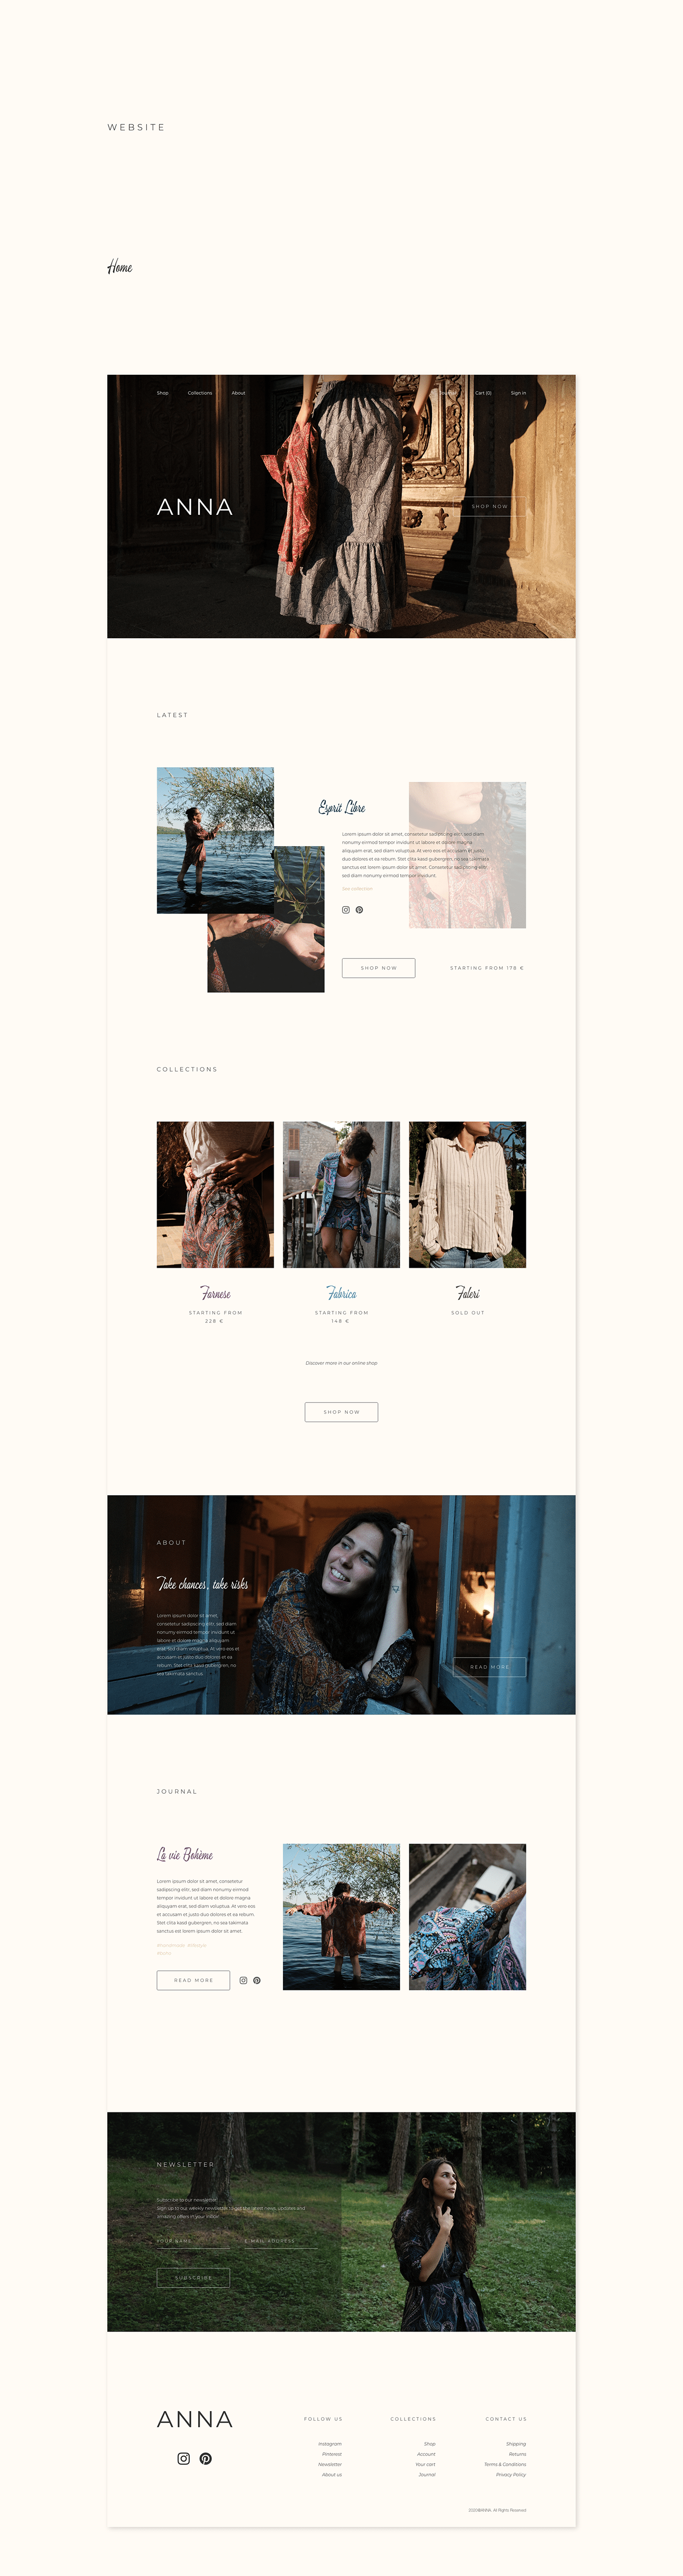 Homepage of ANNA by Anna Graziani website